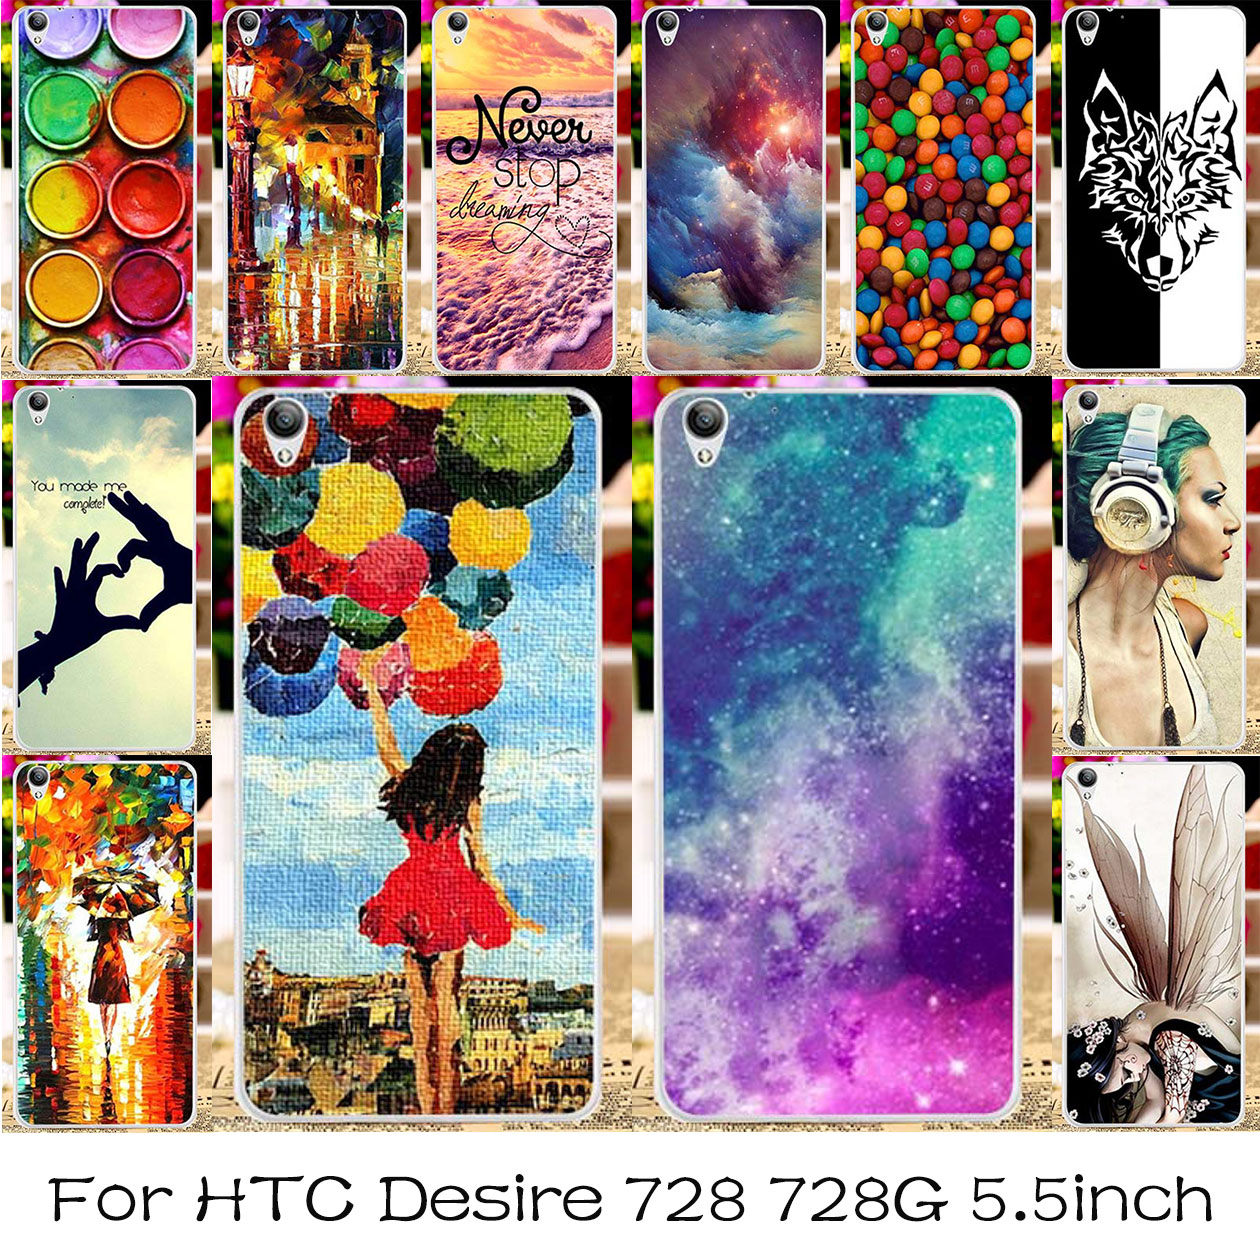 TAOYUNXI Silicone Plastic Mobile Phone Case For HTC Desire 728 728G Bag Shell Dual Sim D728T D728W Cover For HTC Desire 728 Case